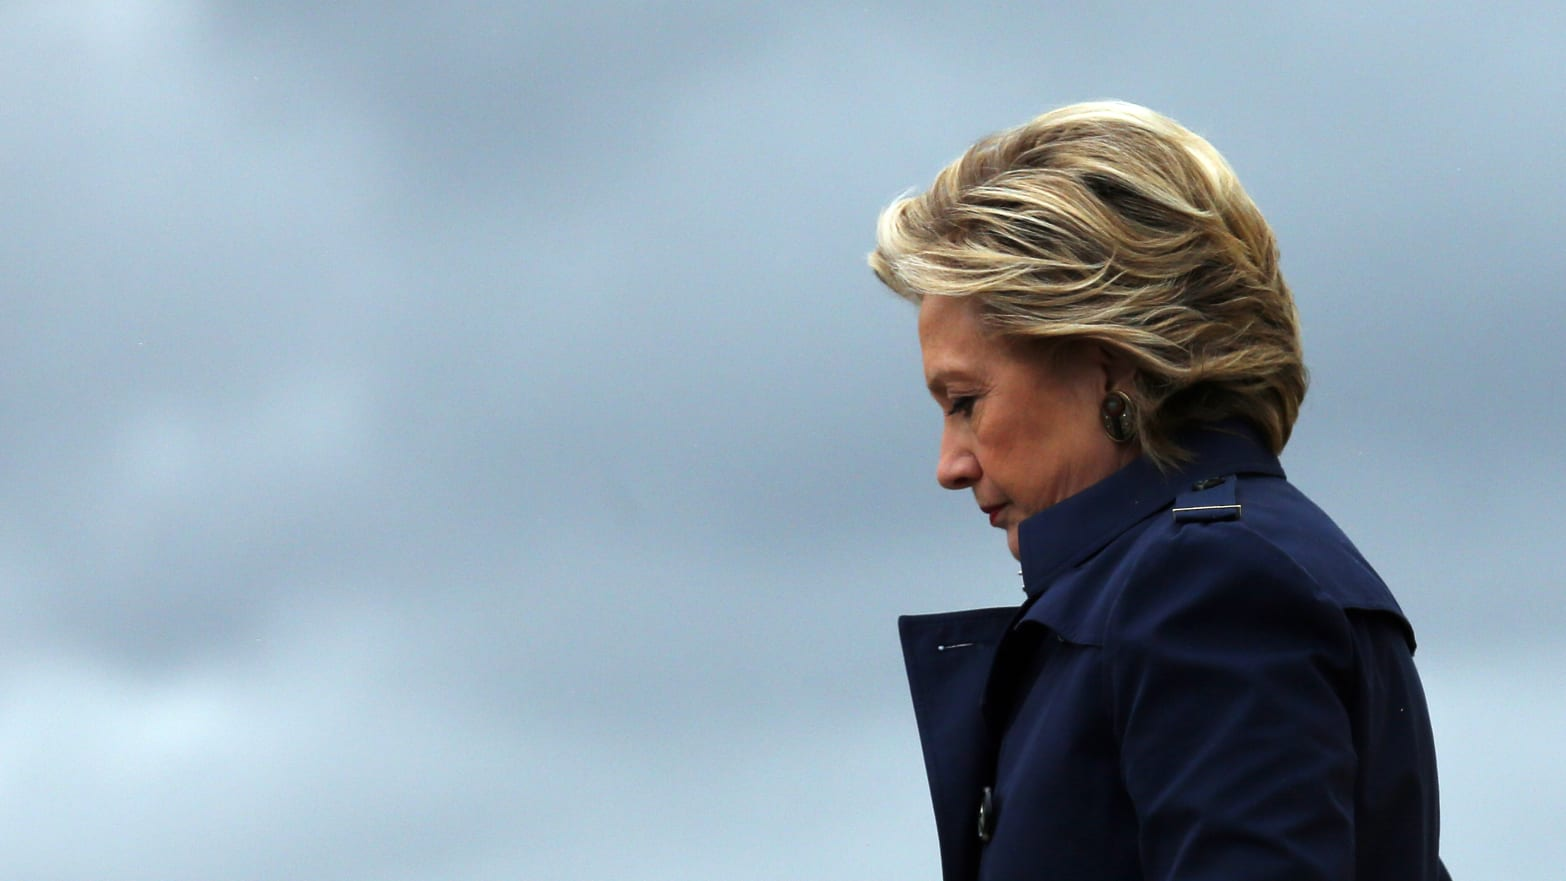 U.S. Democratic presidential nominee Hillary Clinton at Burke Lakefront airport in Cleveland, Ohio